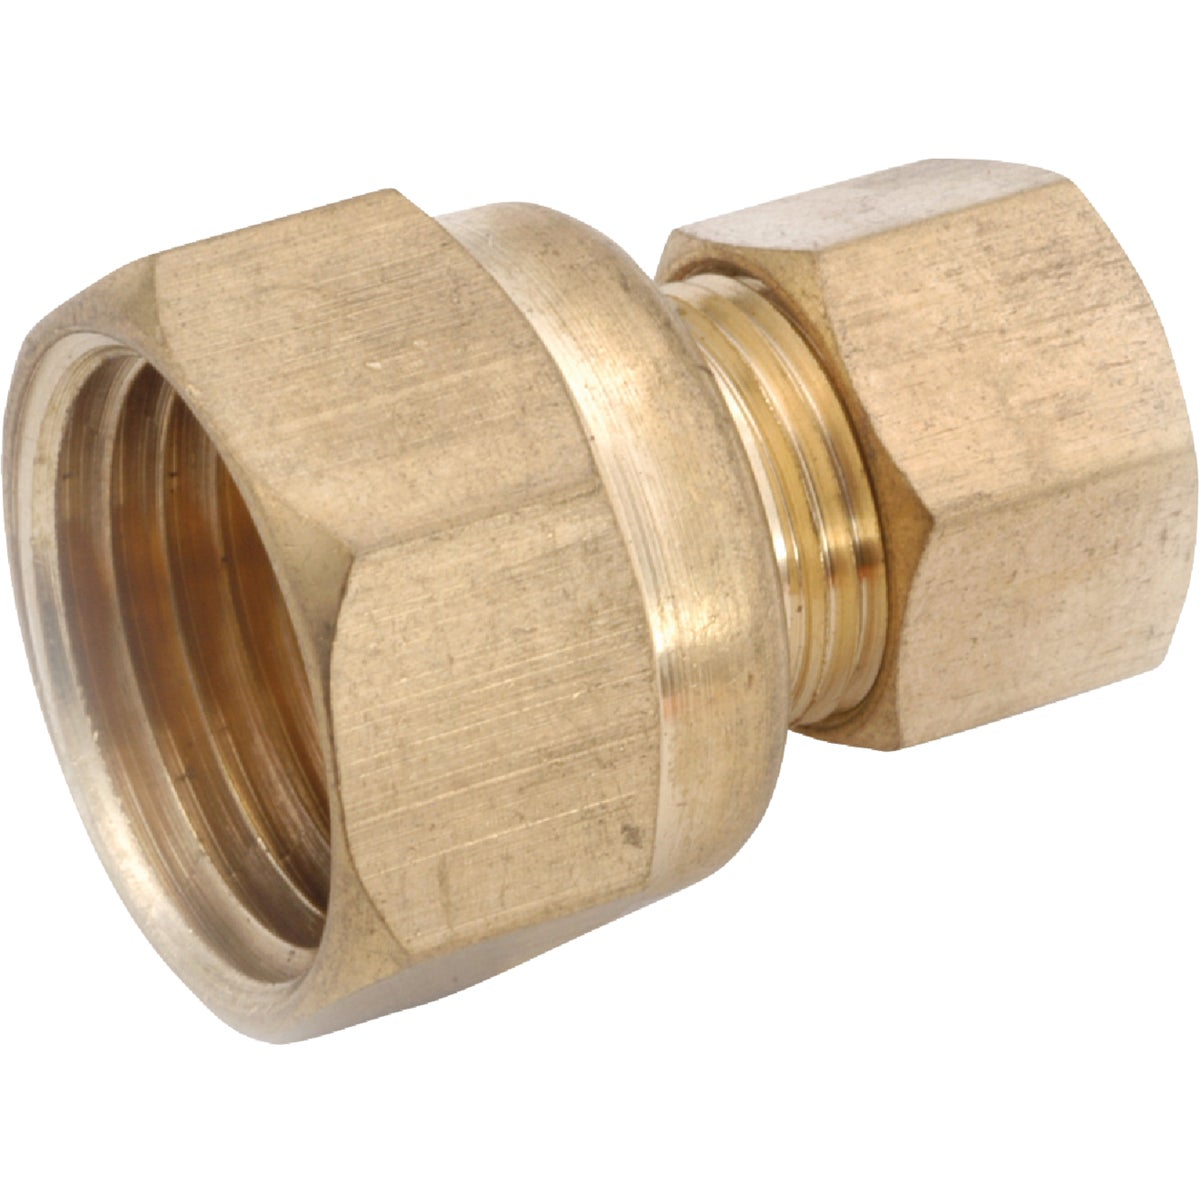 1/2X1/2 FEMALE COUPLING - 750066-0808 by Anderson Metals Corp